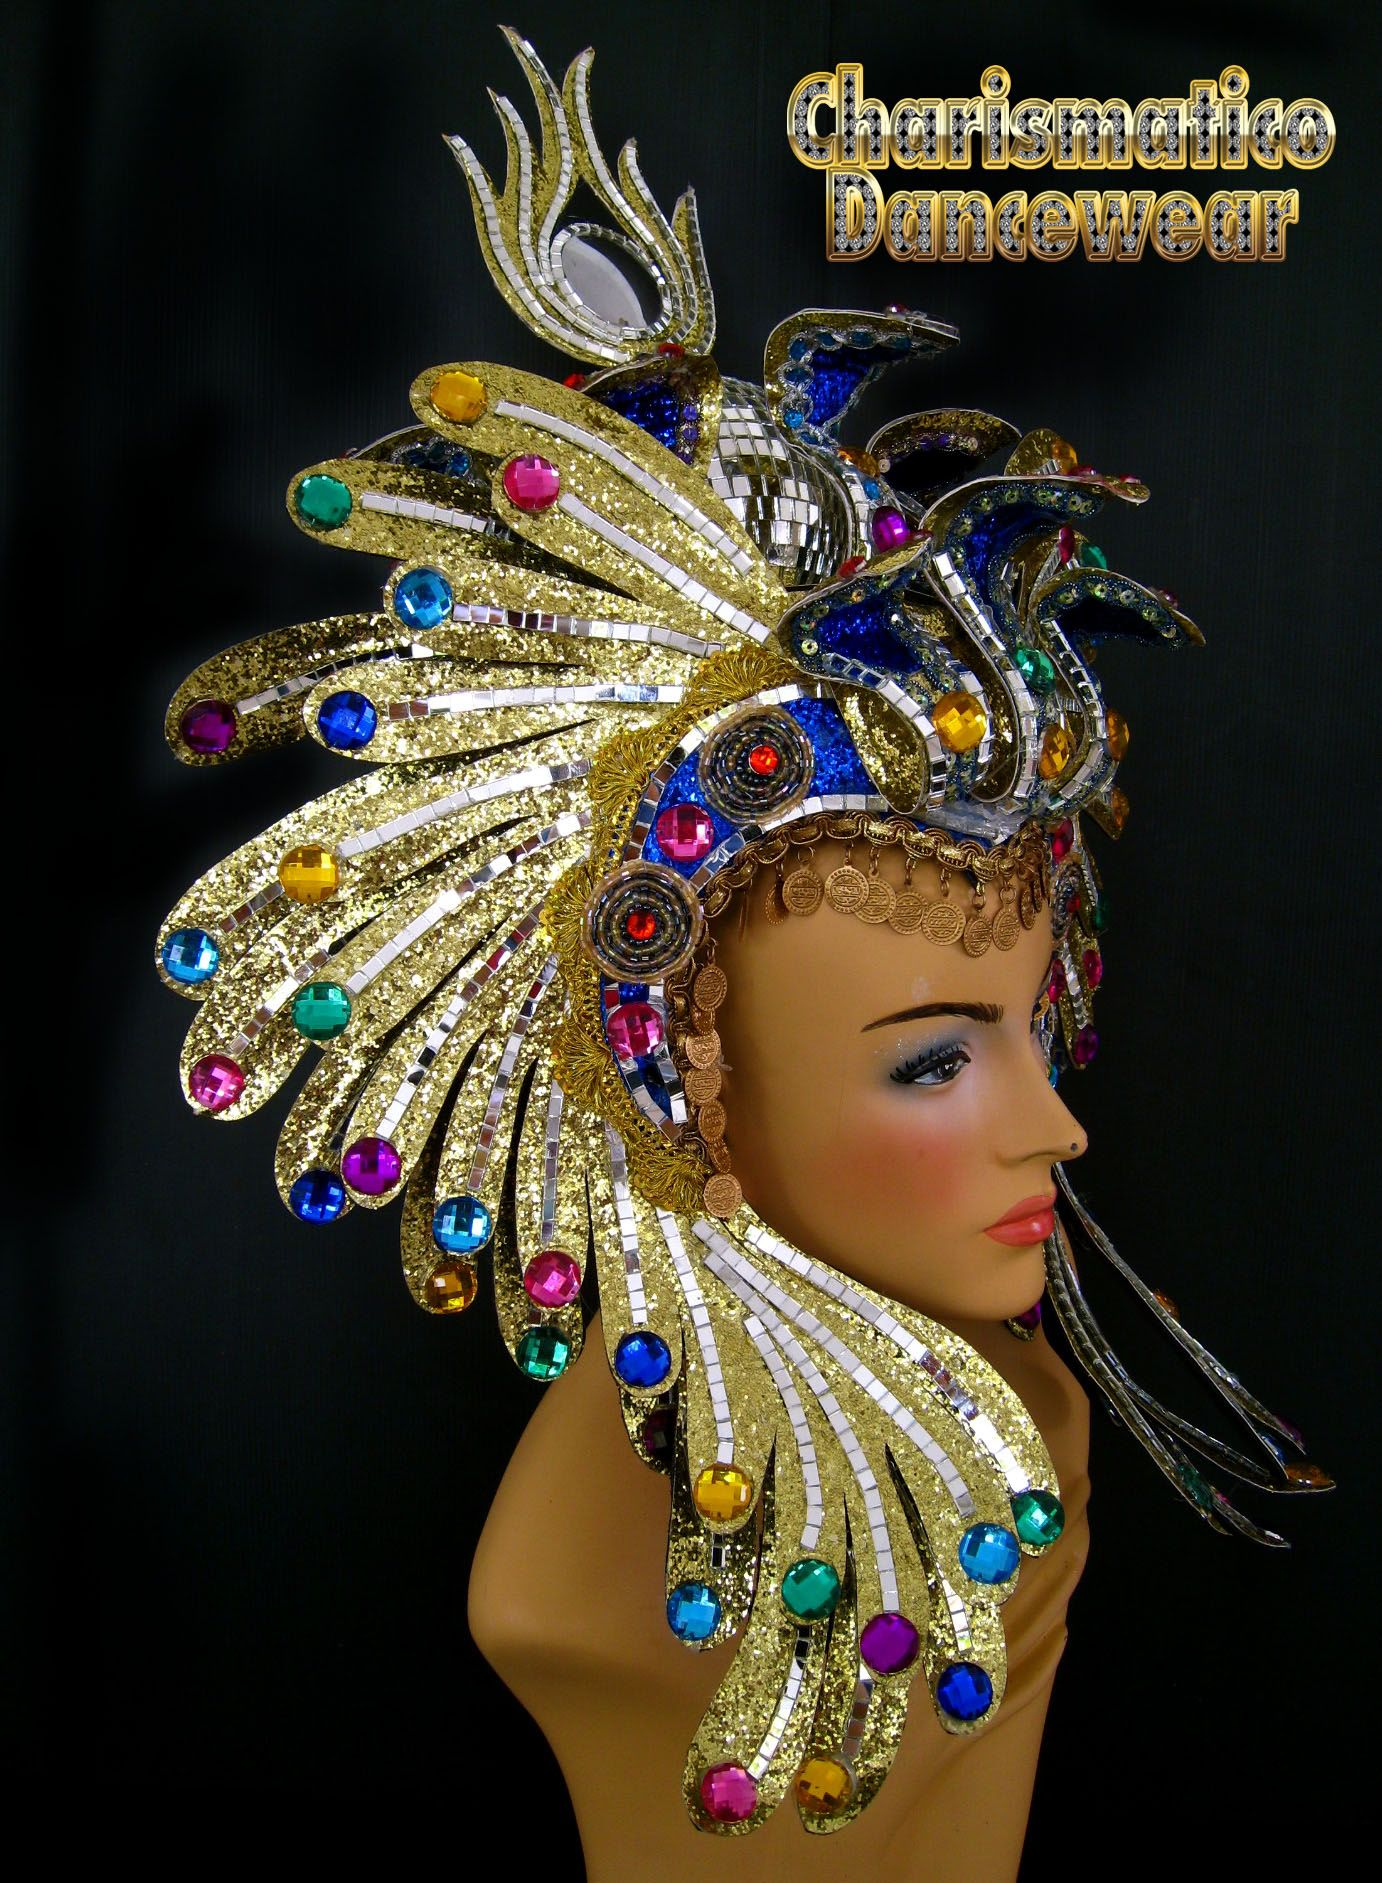 egyptian queen headdress - photo #29